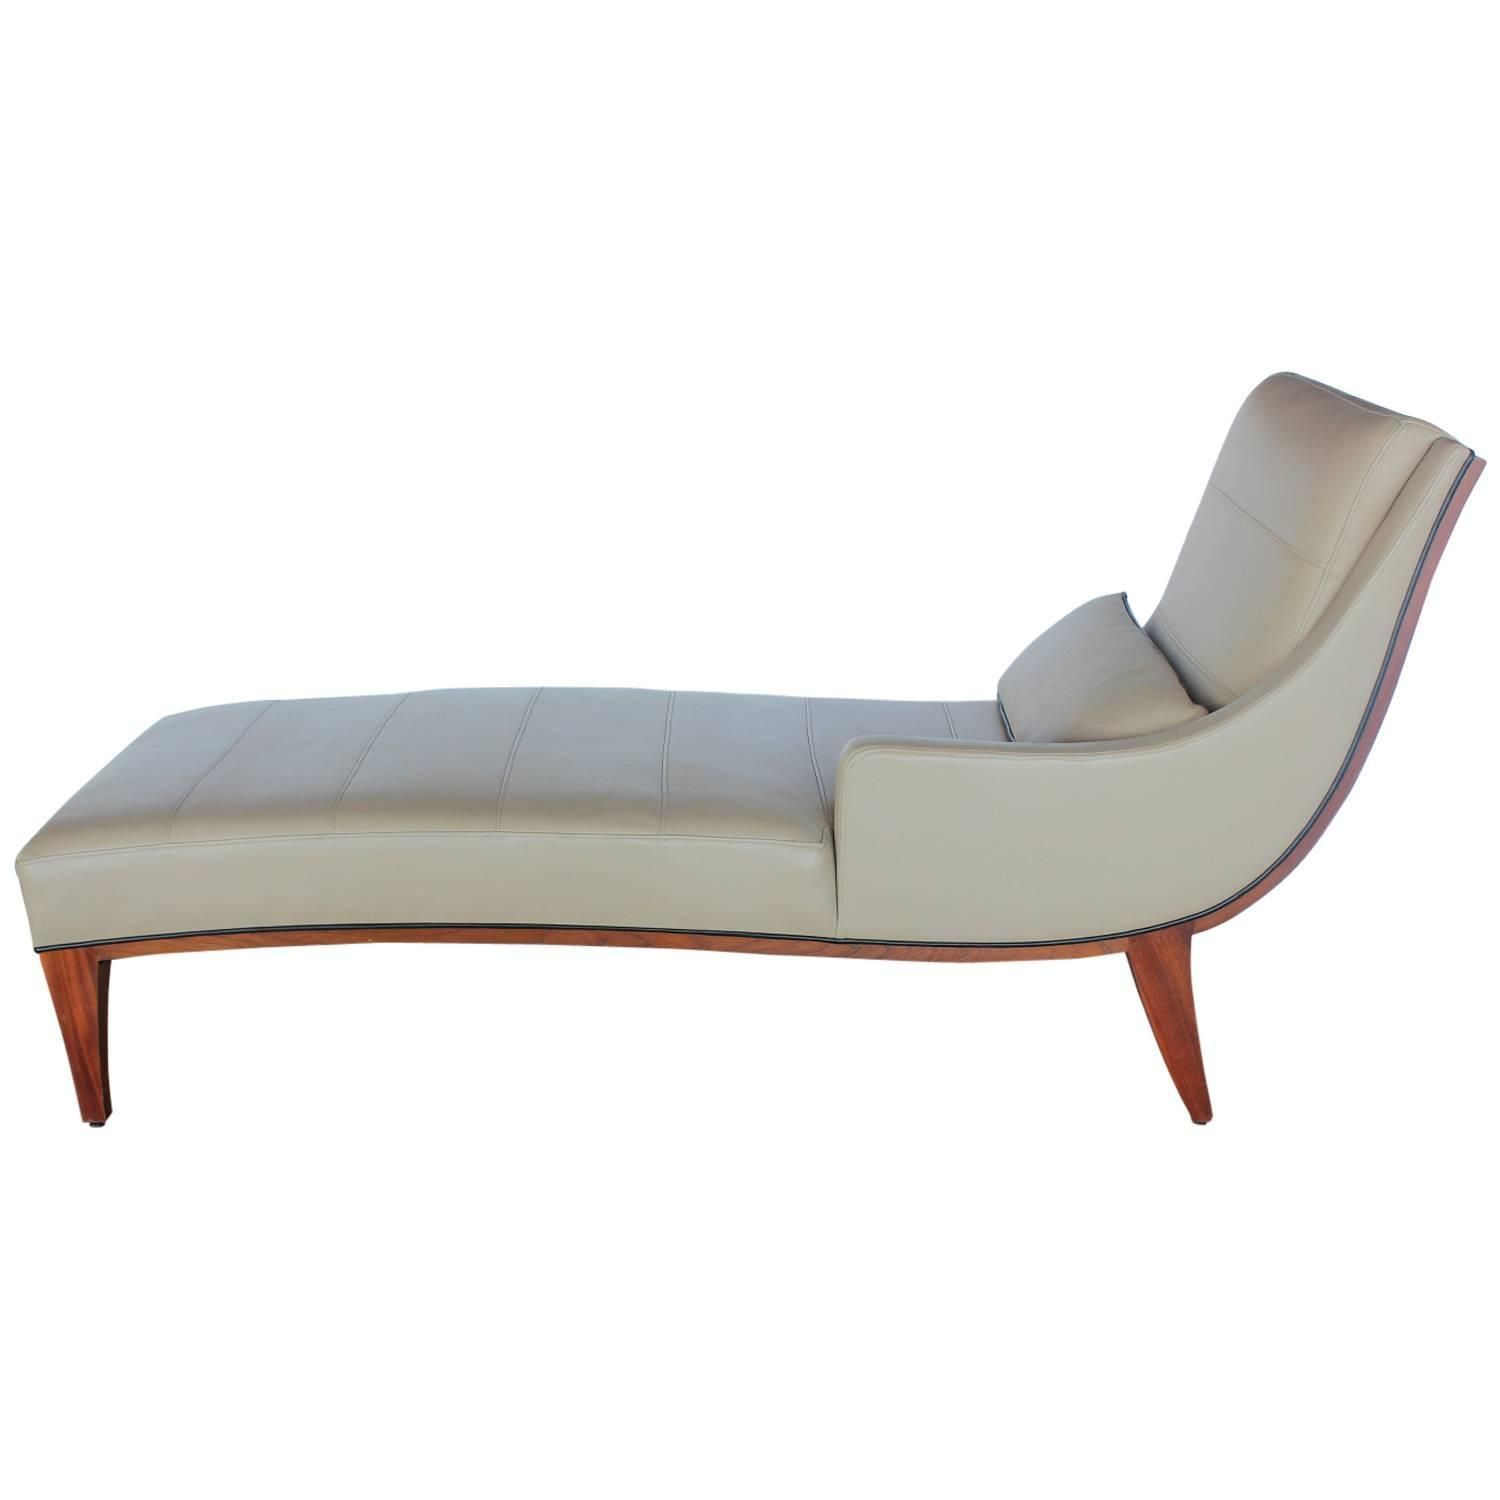 Modern Leather Chaise Lounge By Widdicomb See More Antique And